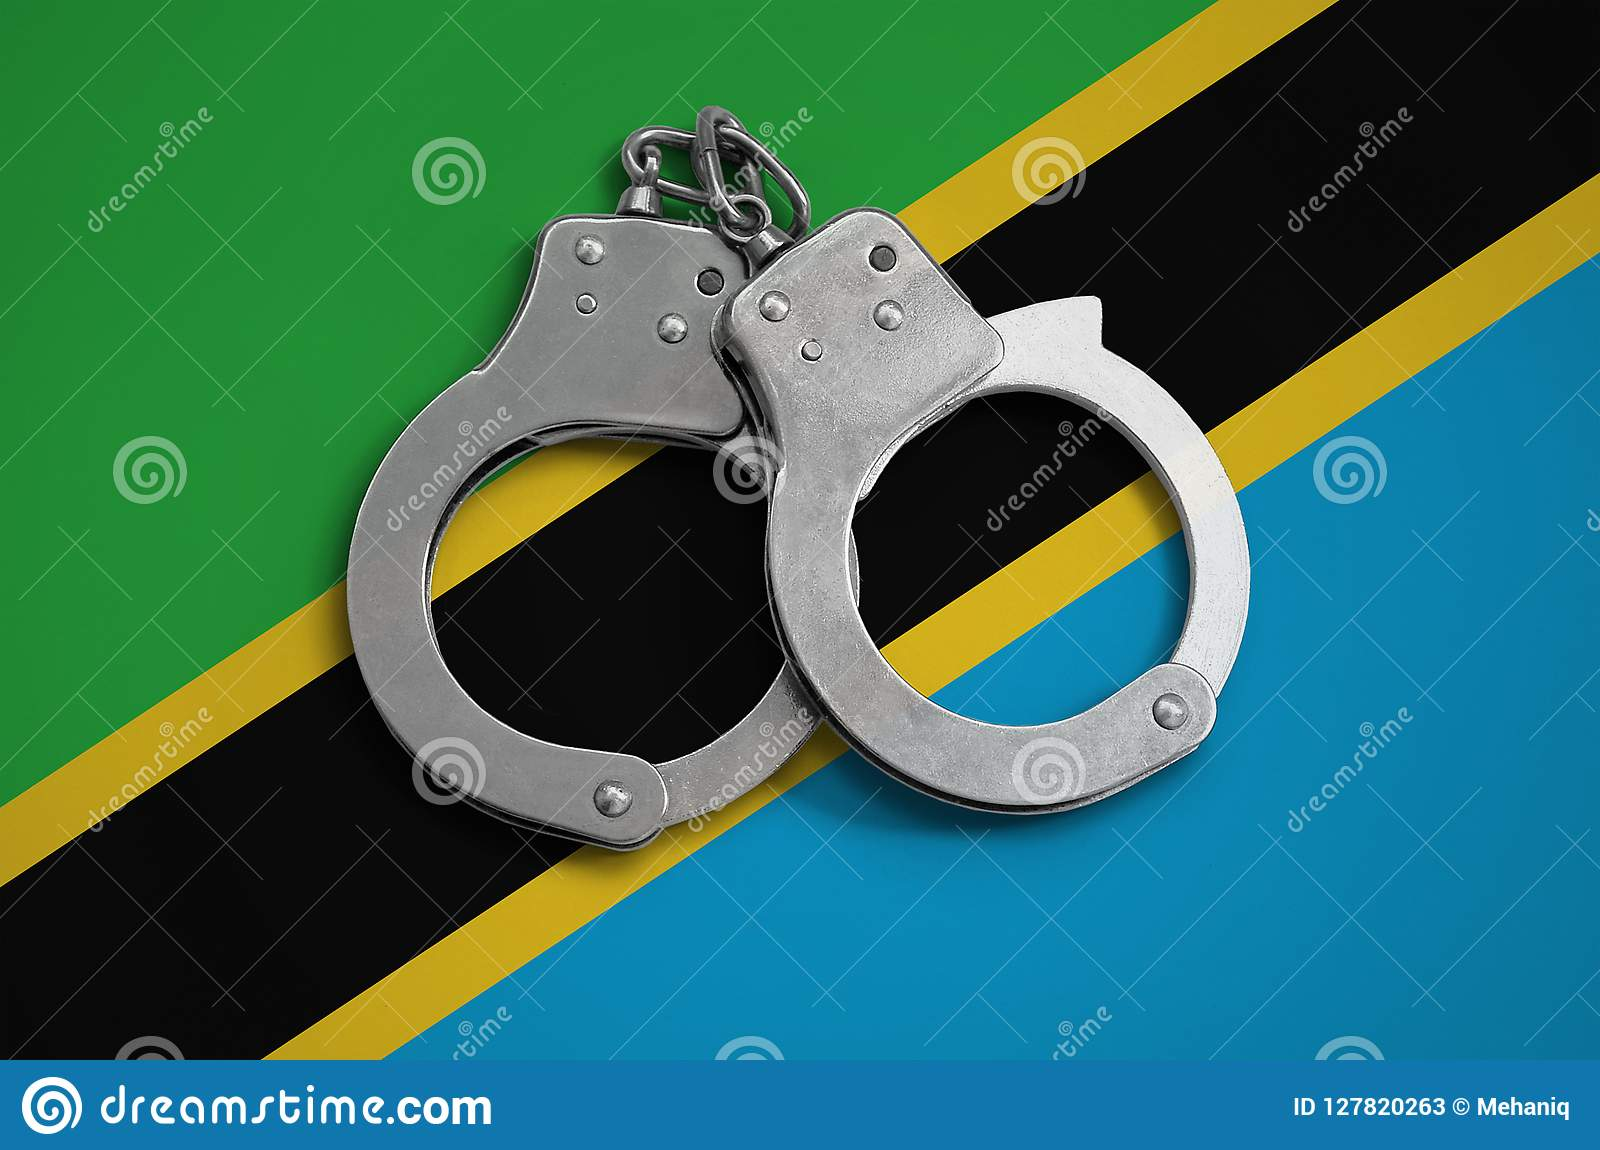 Tanzania flag and police handcuffs. The concept of observance of the law in the country and protection from crime